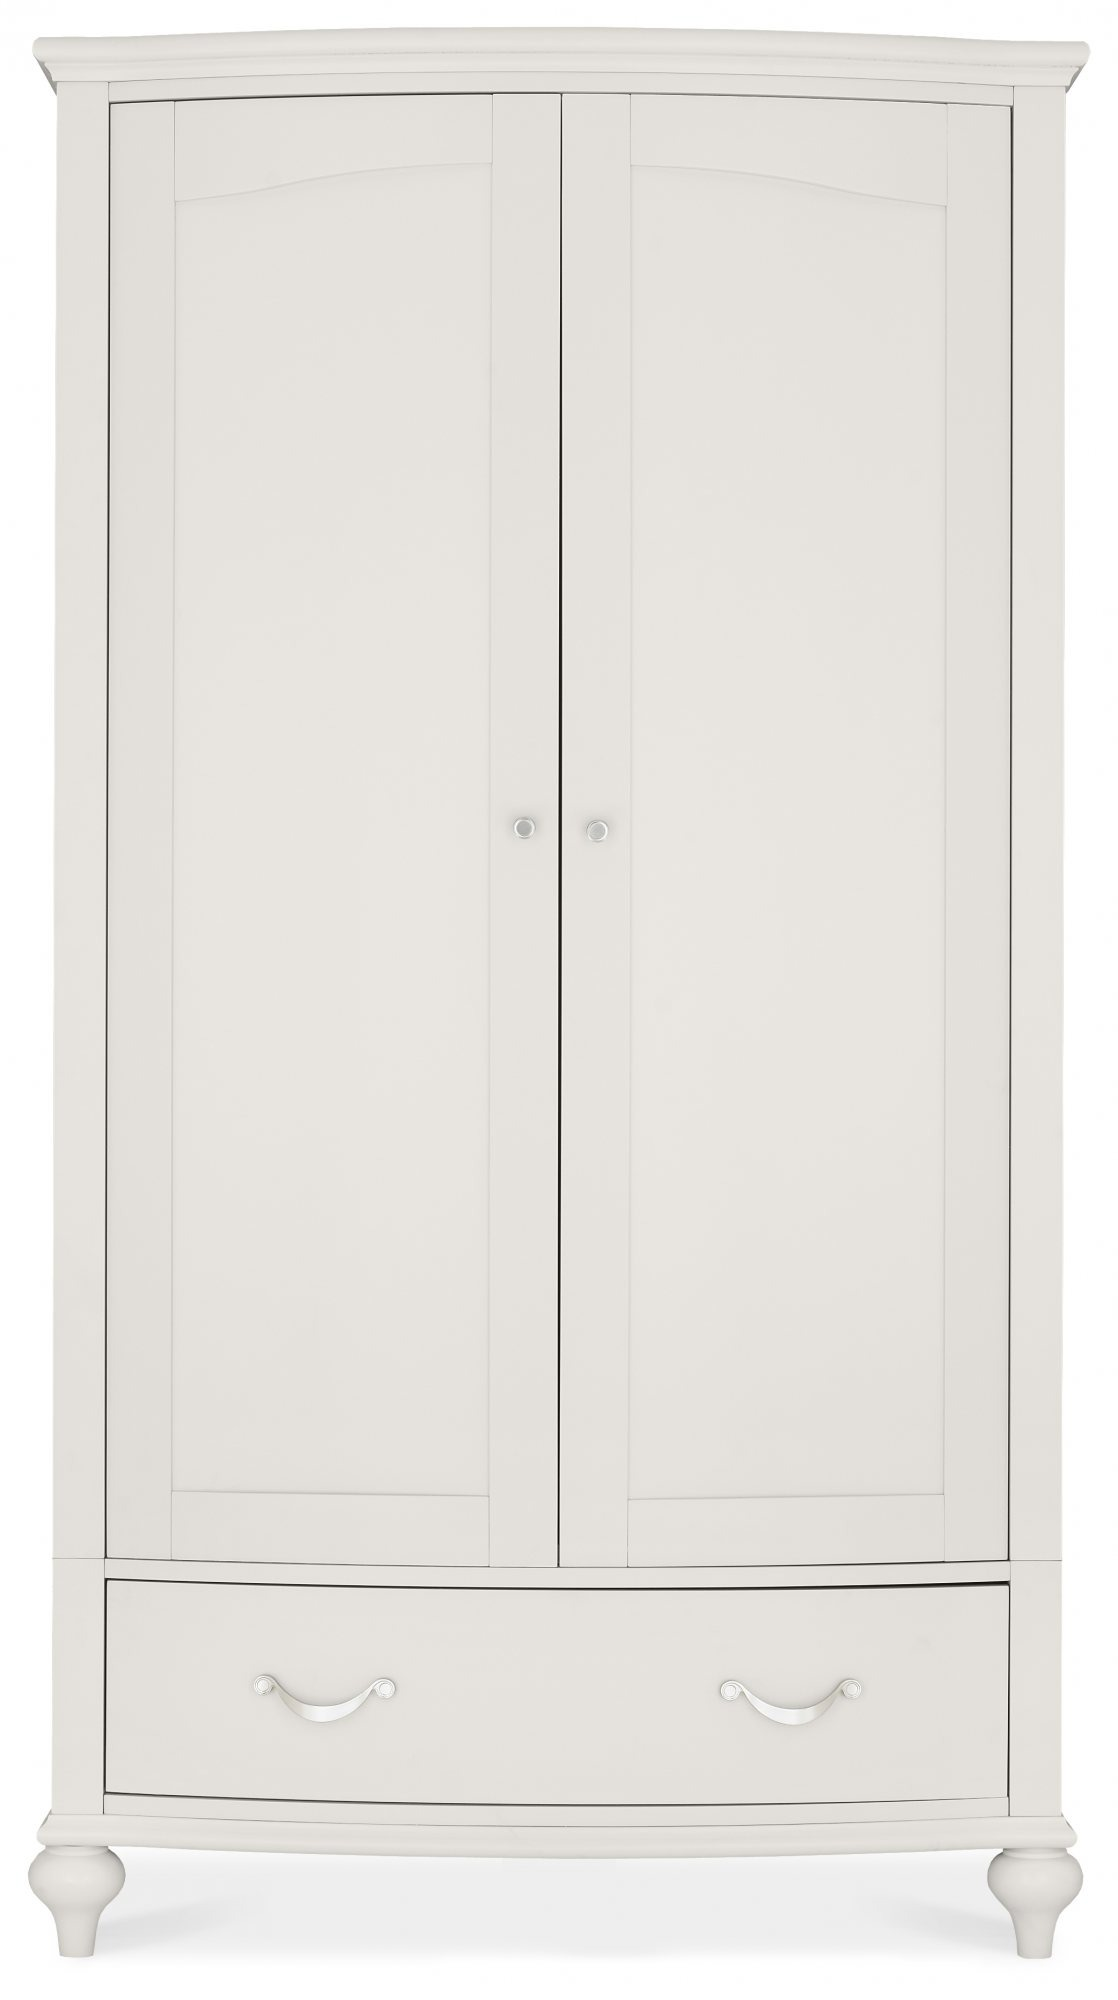 MONICA GREY DOUBLE WARDROBE - FRONT DETAIL